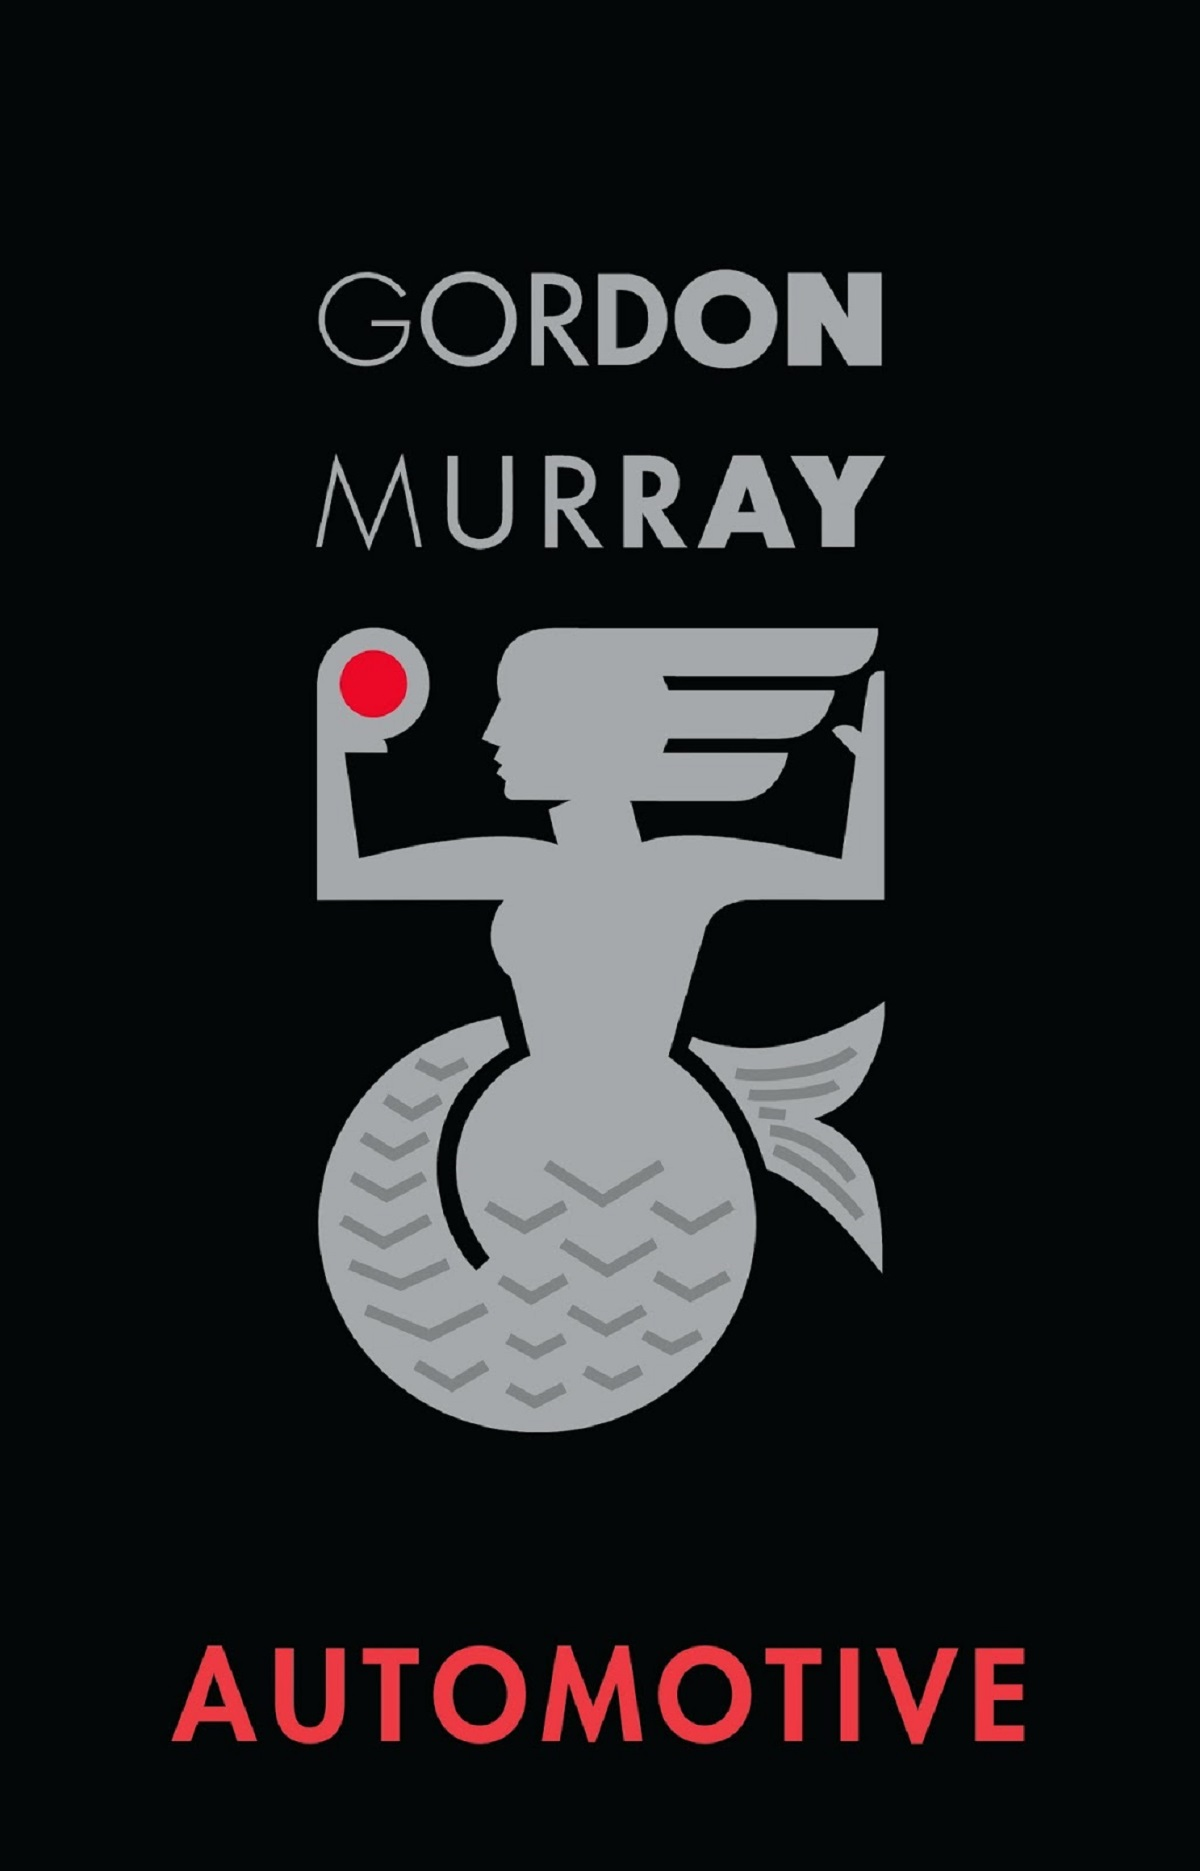 GordonMurray-Automotive-01.jpg